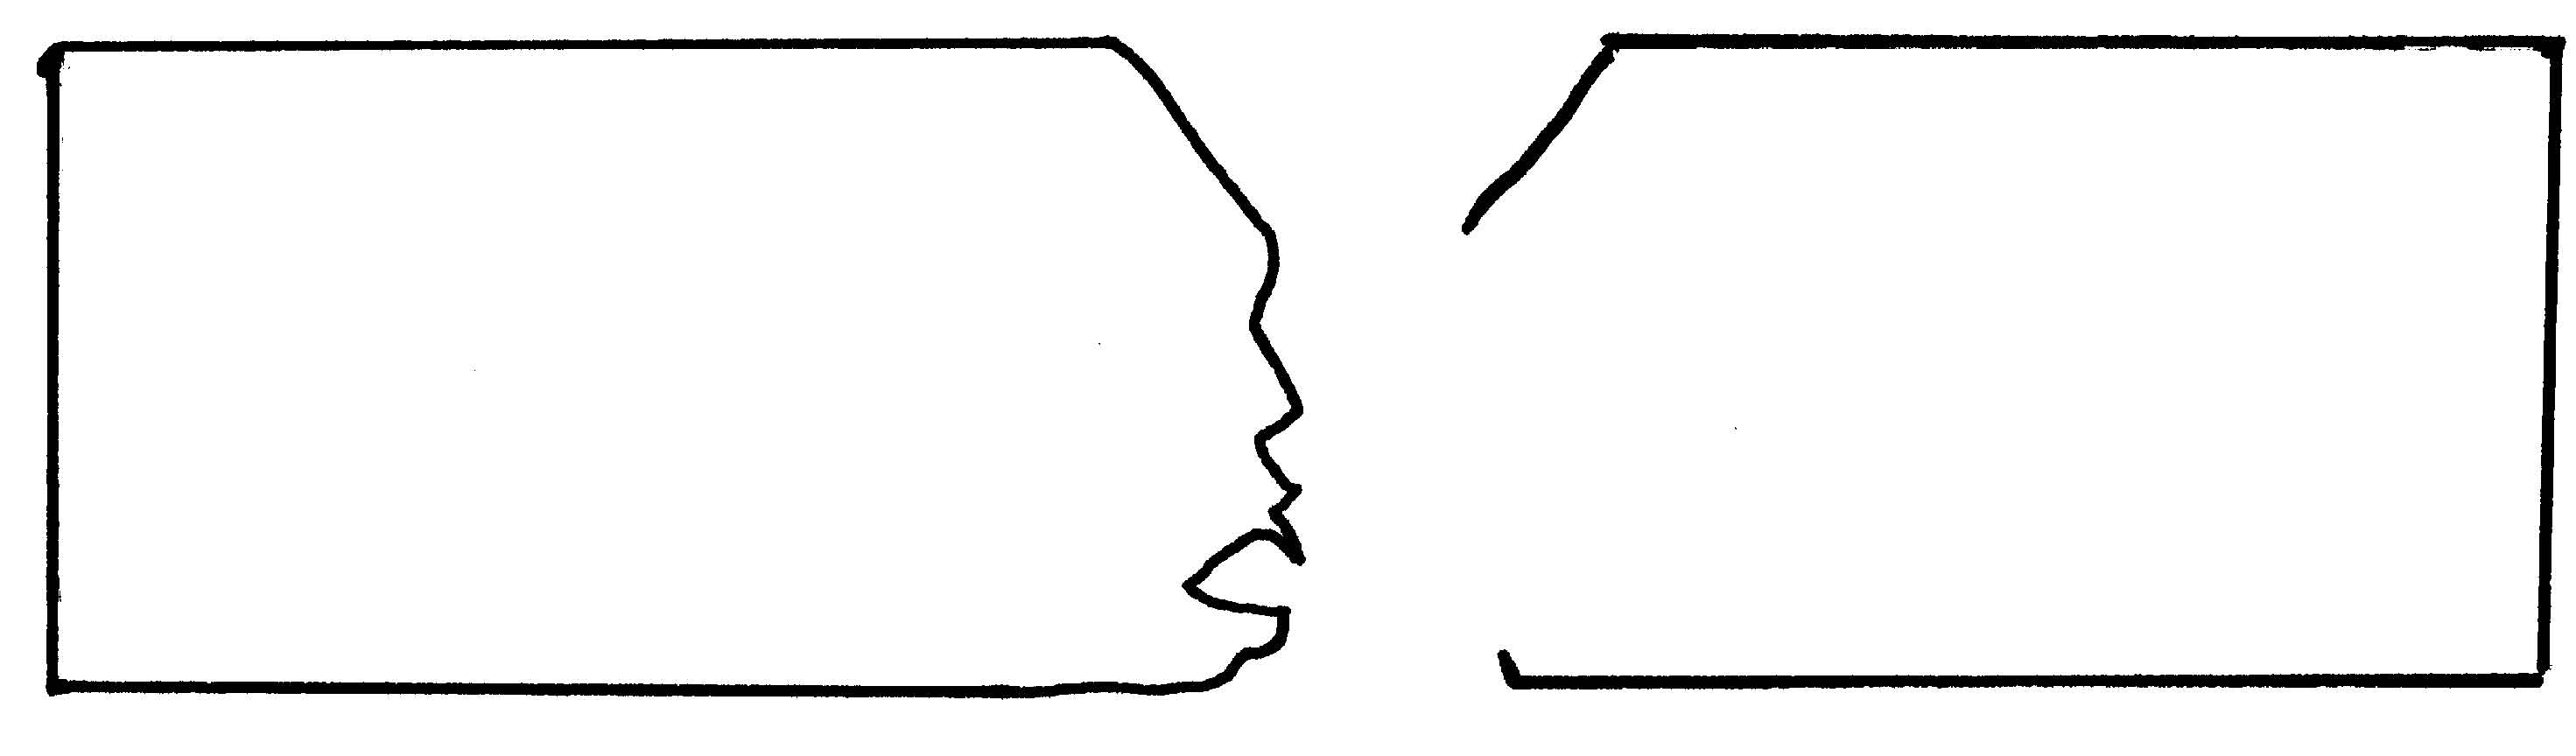 drawing-profile-exercise-tiff